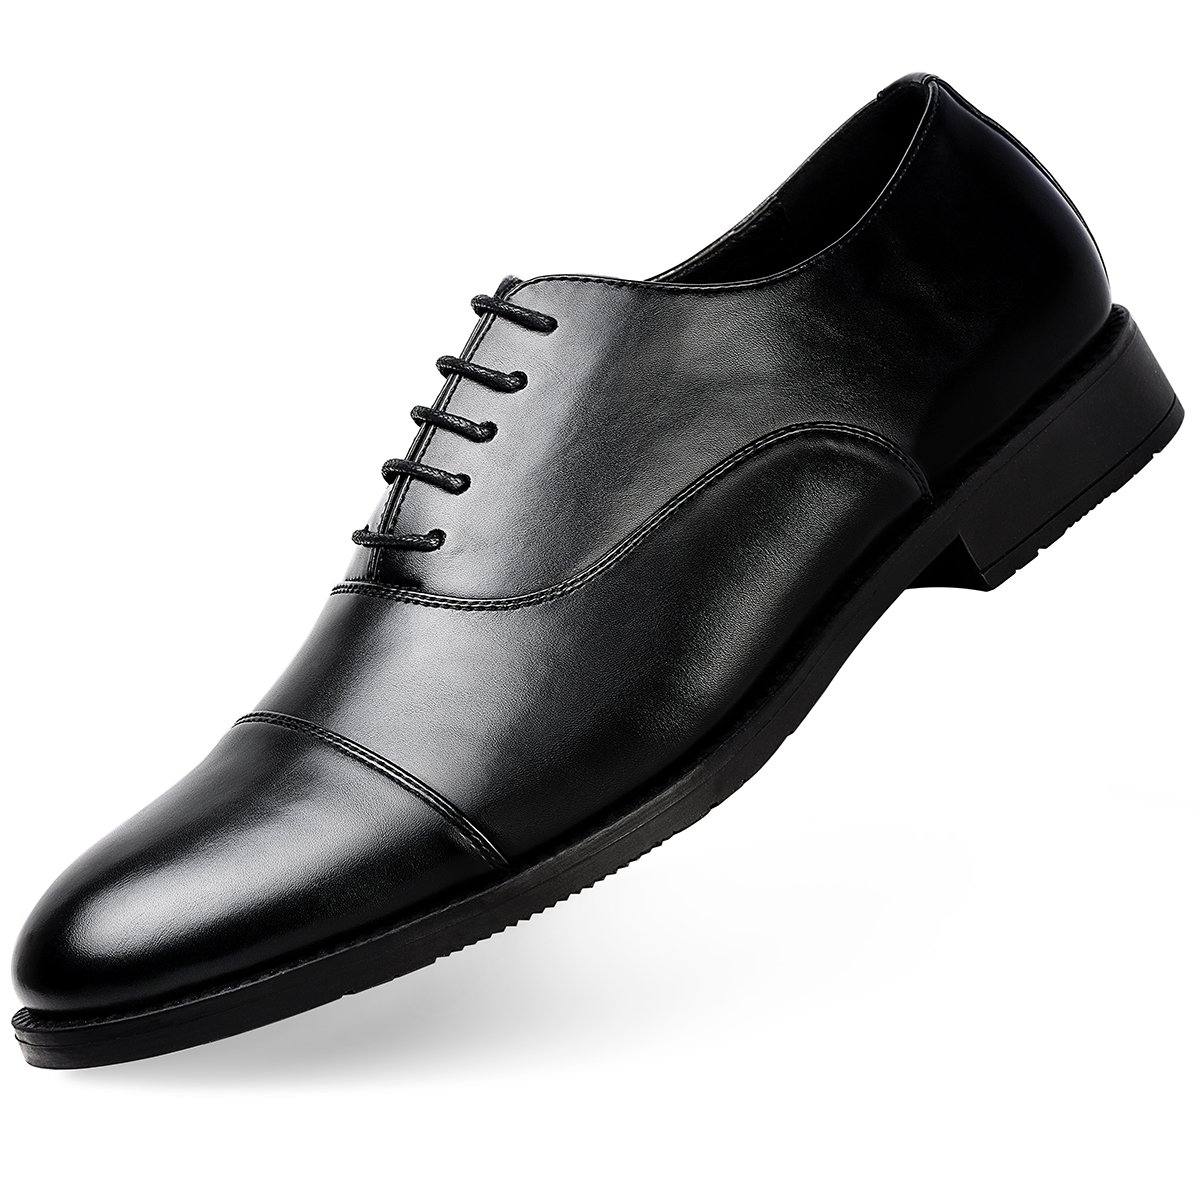 Men's Dress Shoes FormalLeather Oxfords Lace up Black 10.5 by GOLAIMAN (Image #1)